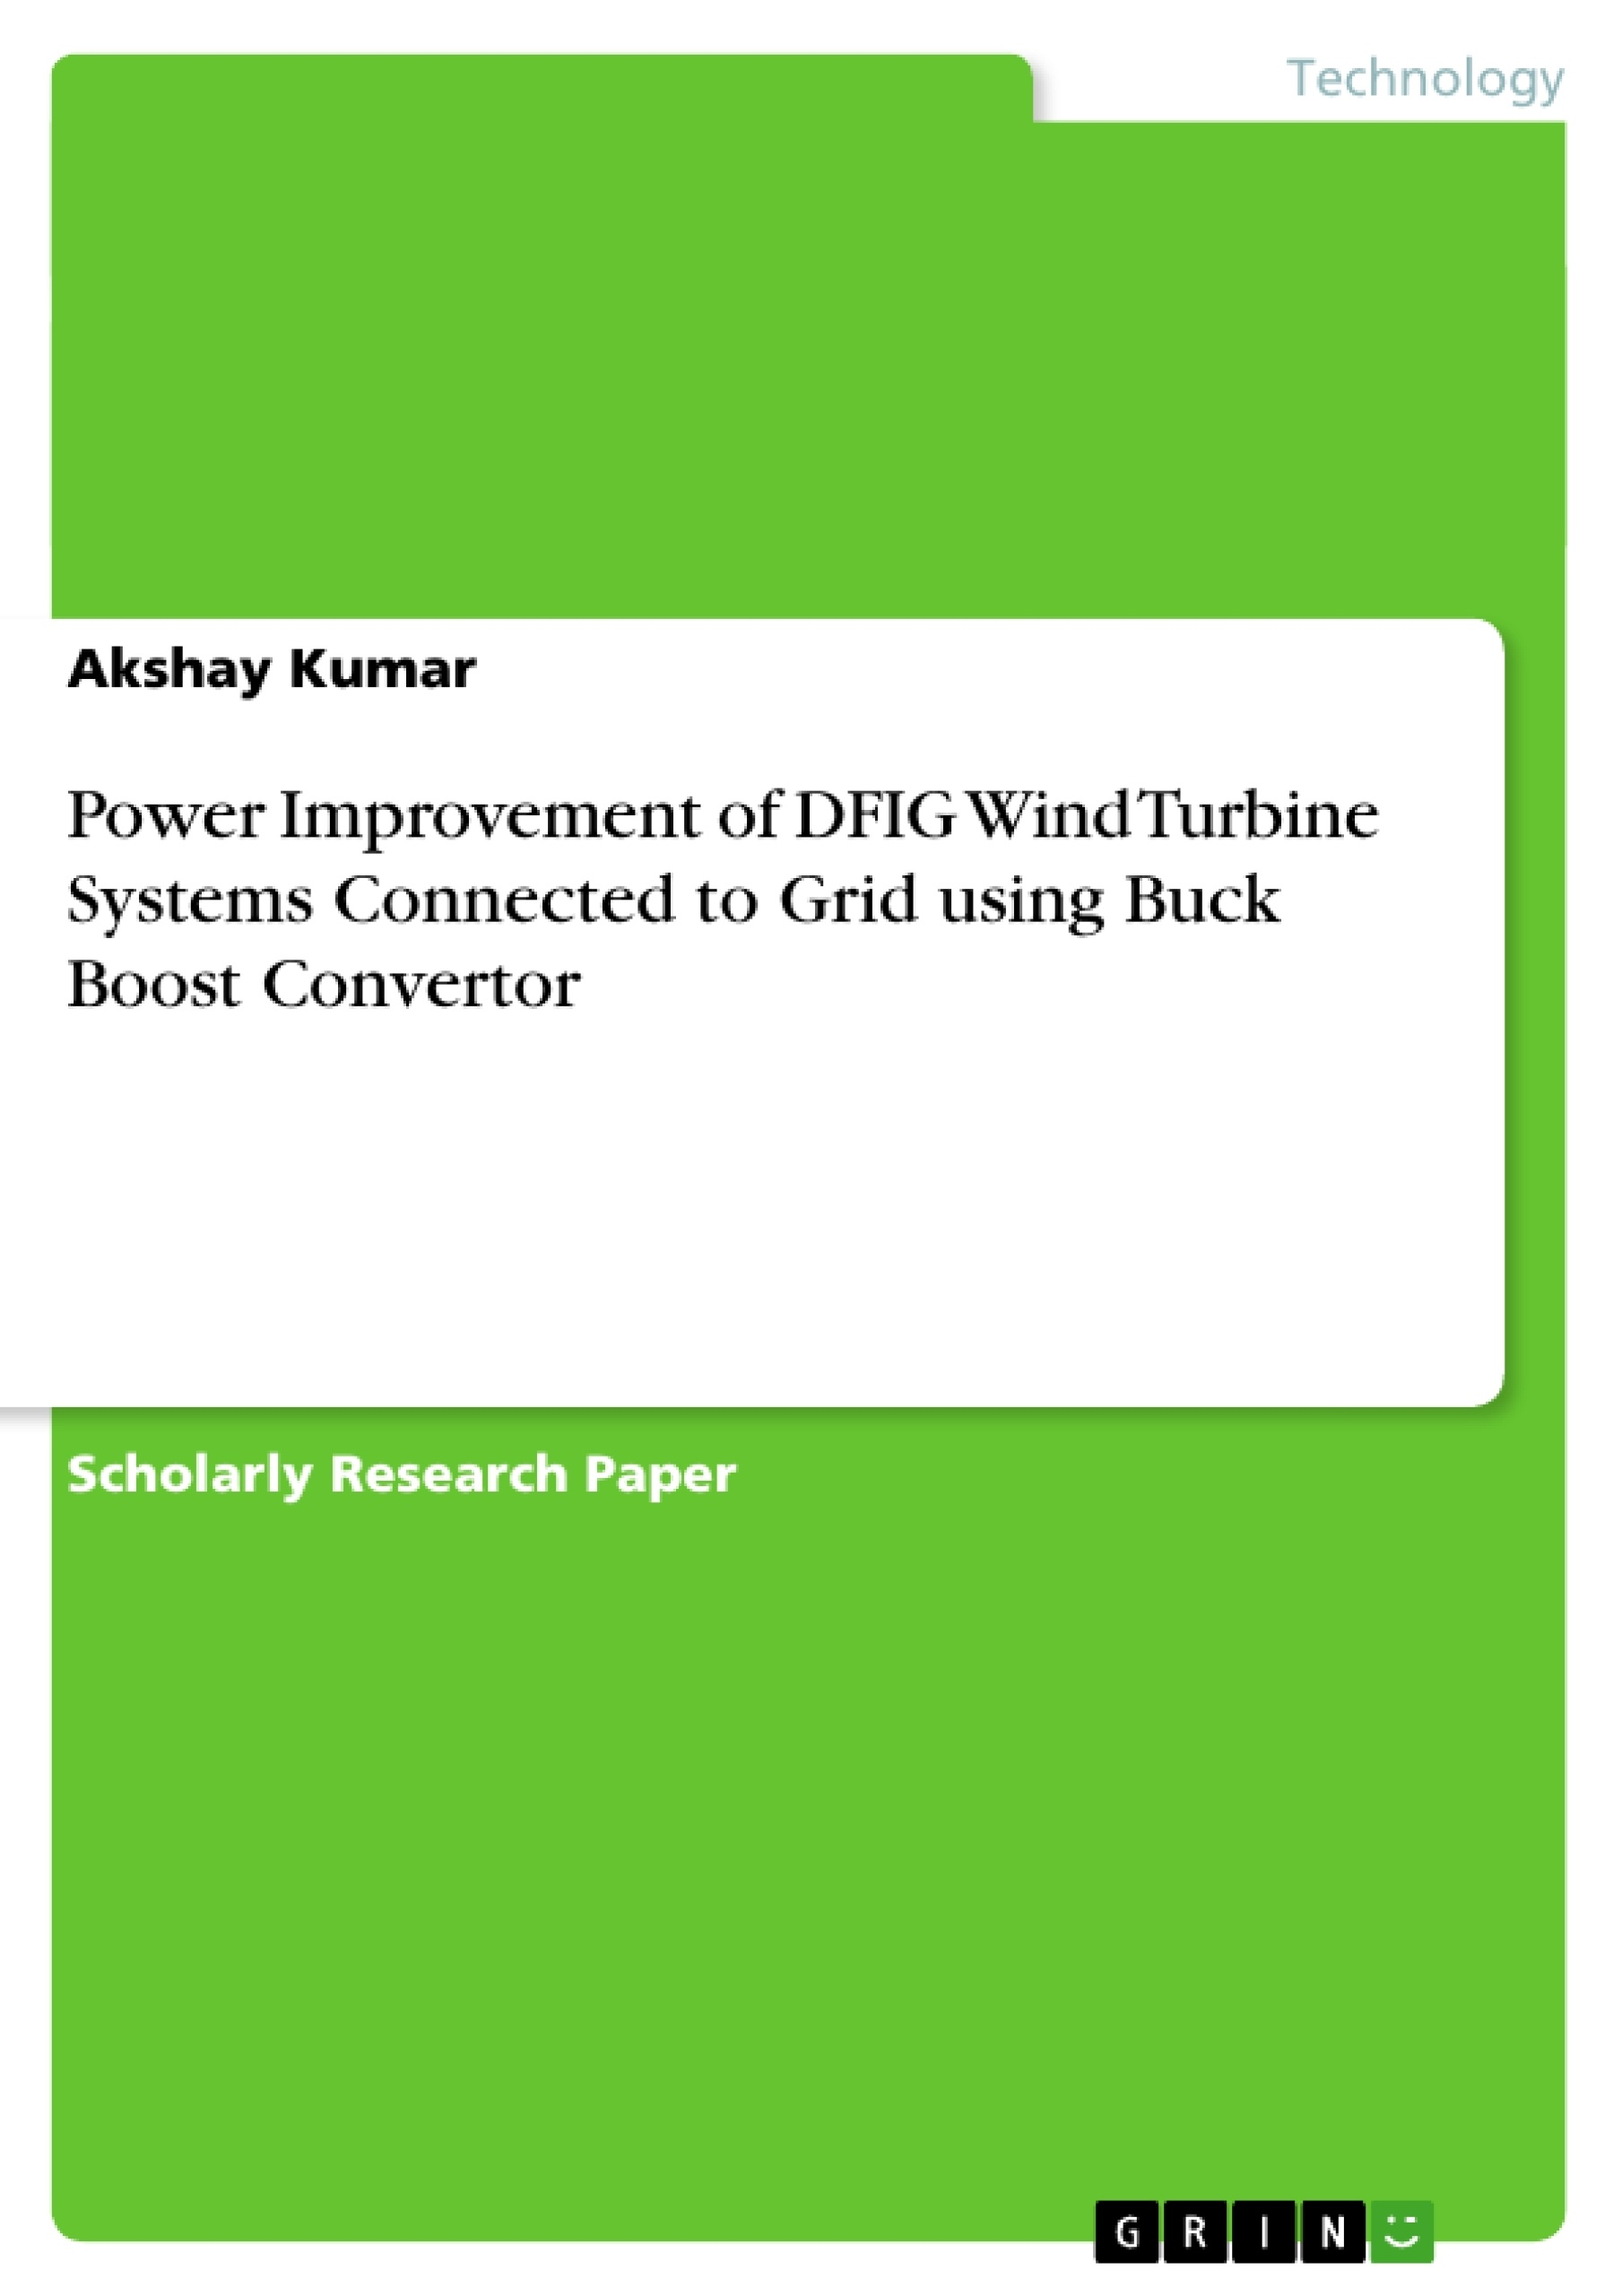 dfig thesis Application of statcom for improved dynamic performance of wind farms in a power grid by aditya jayam prabhakar a thesis presented to the faculty of the graduate school of the.